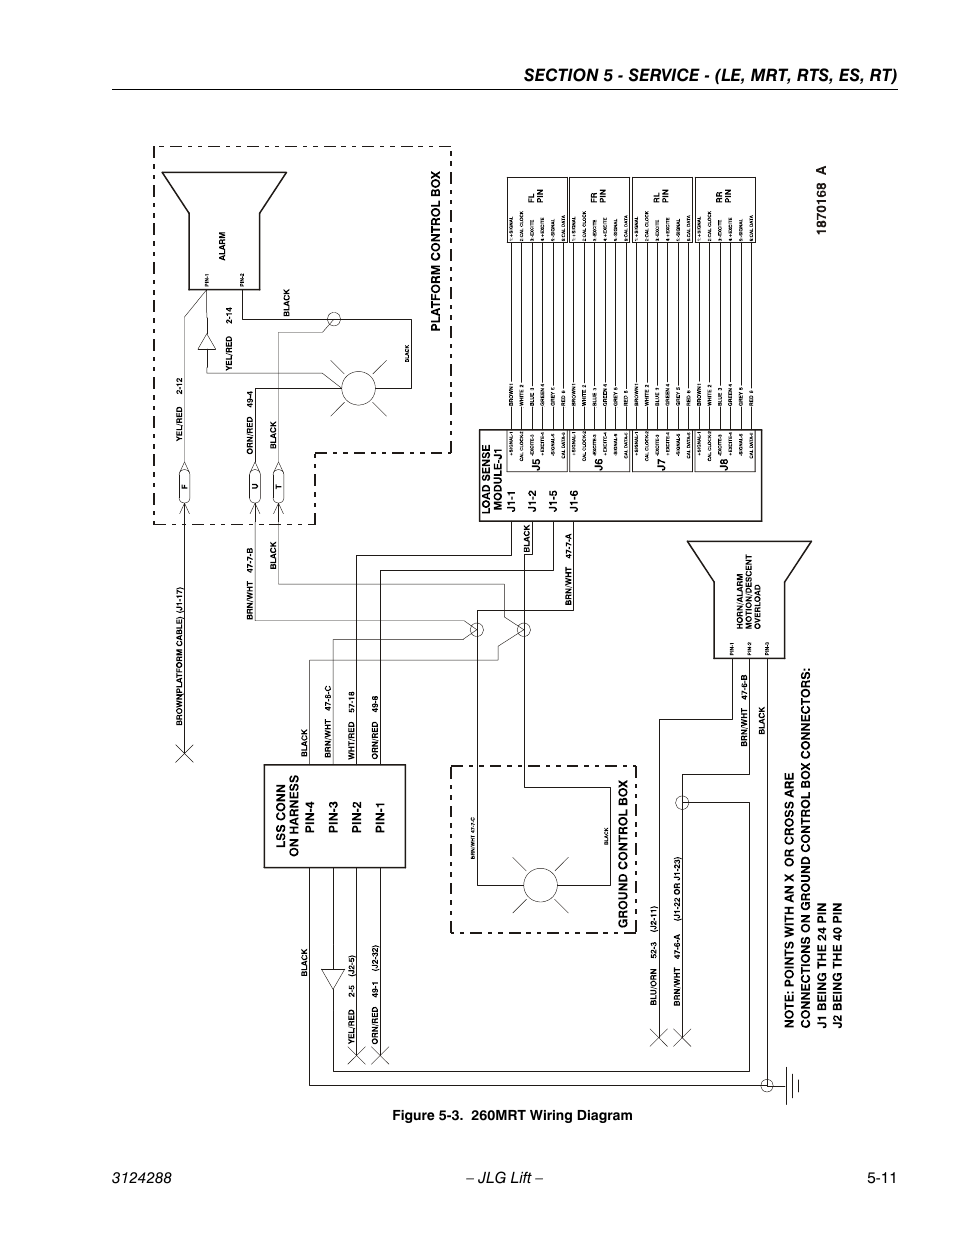 260mrt wiring diagram -11 | jlg lss scissors user manual | page 47 / 78 jlg cm2023 wiring diagram